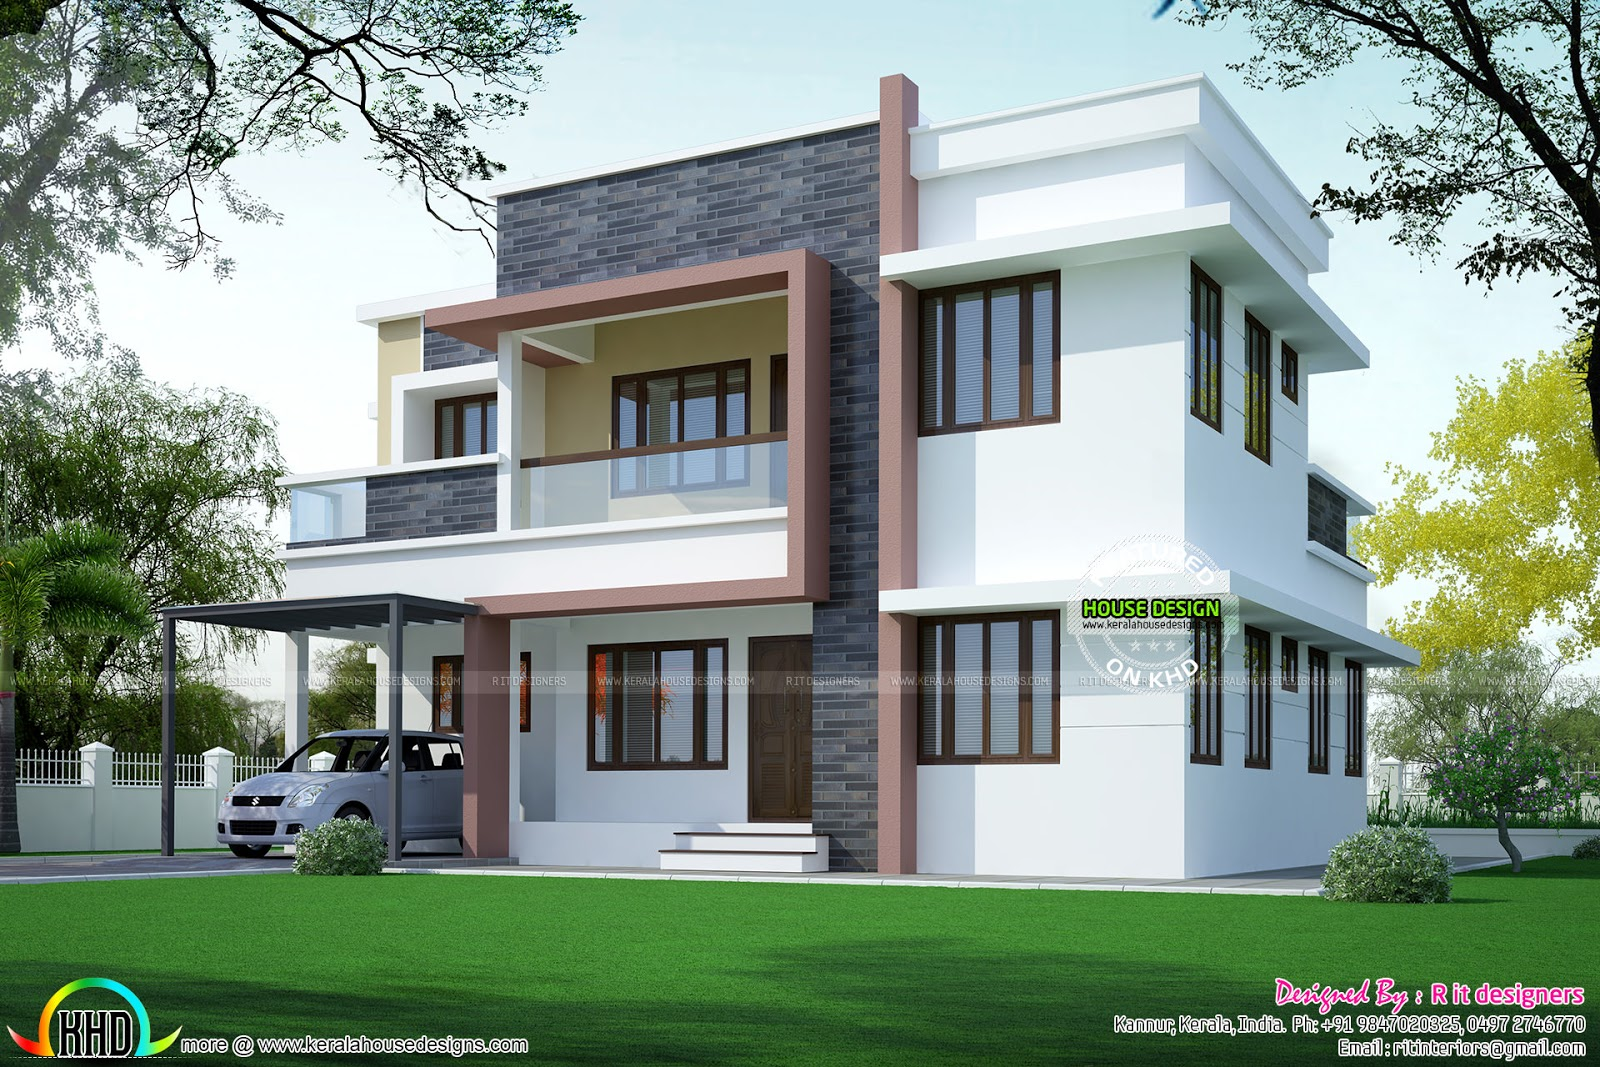 Simple home plan in modern style kerala home design and for Simple modern house blueprints